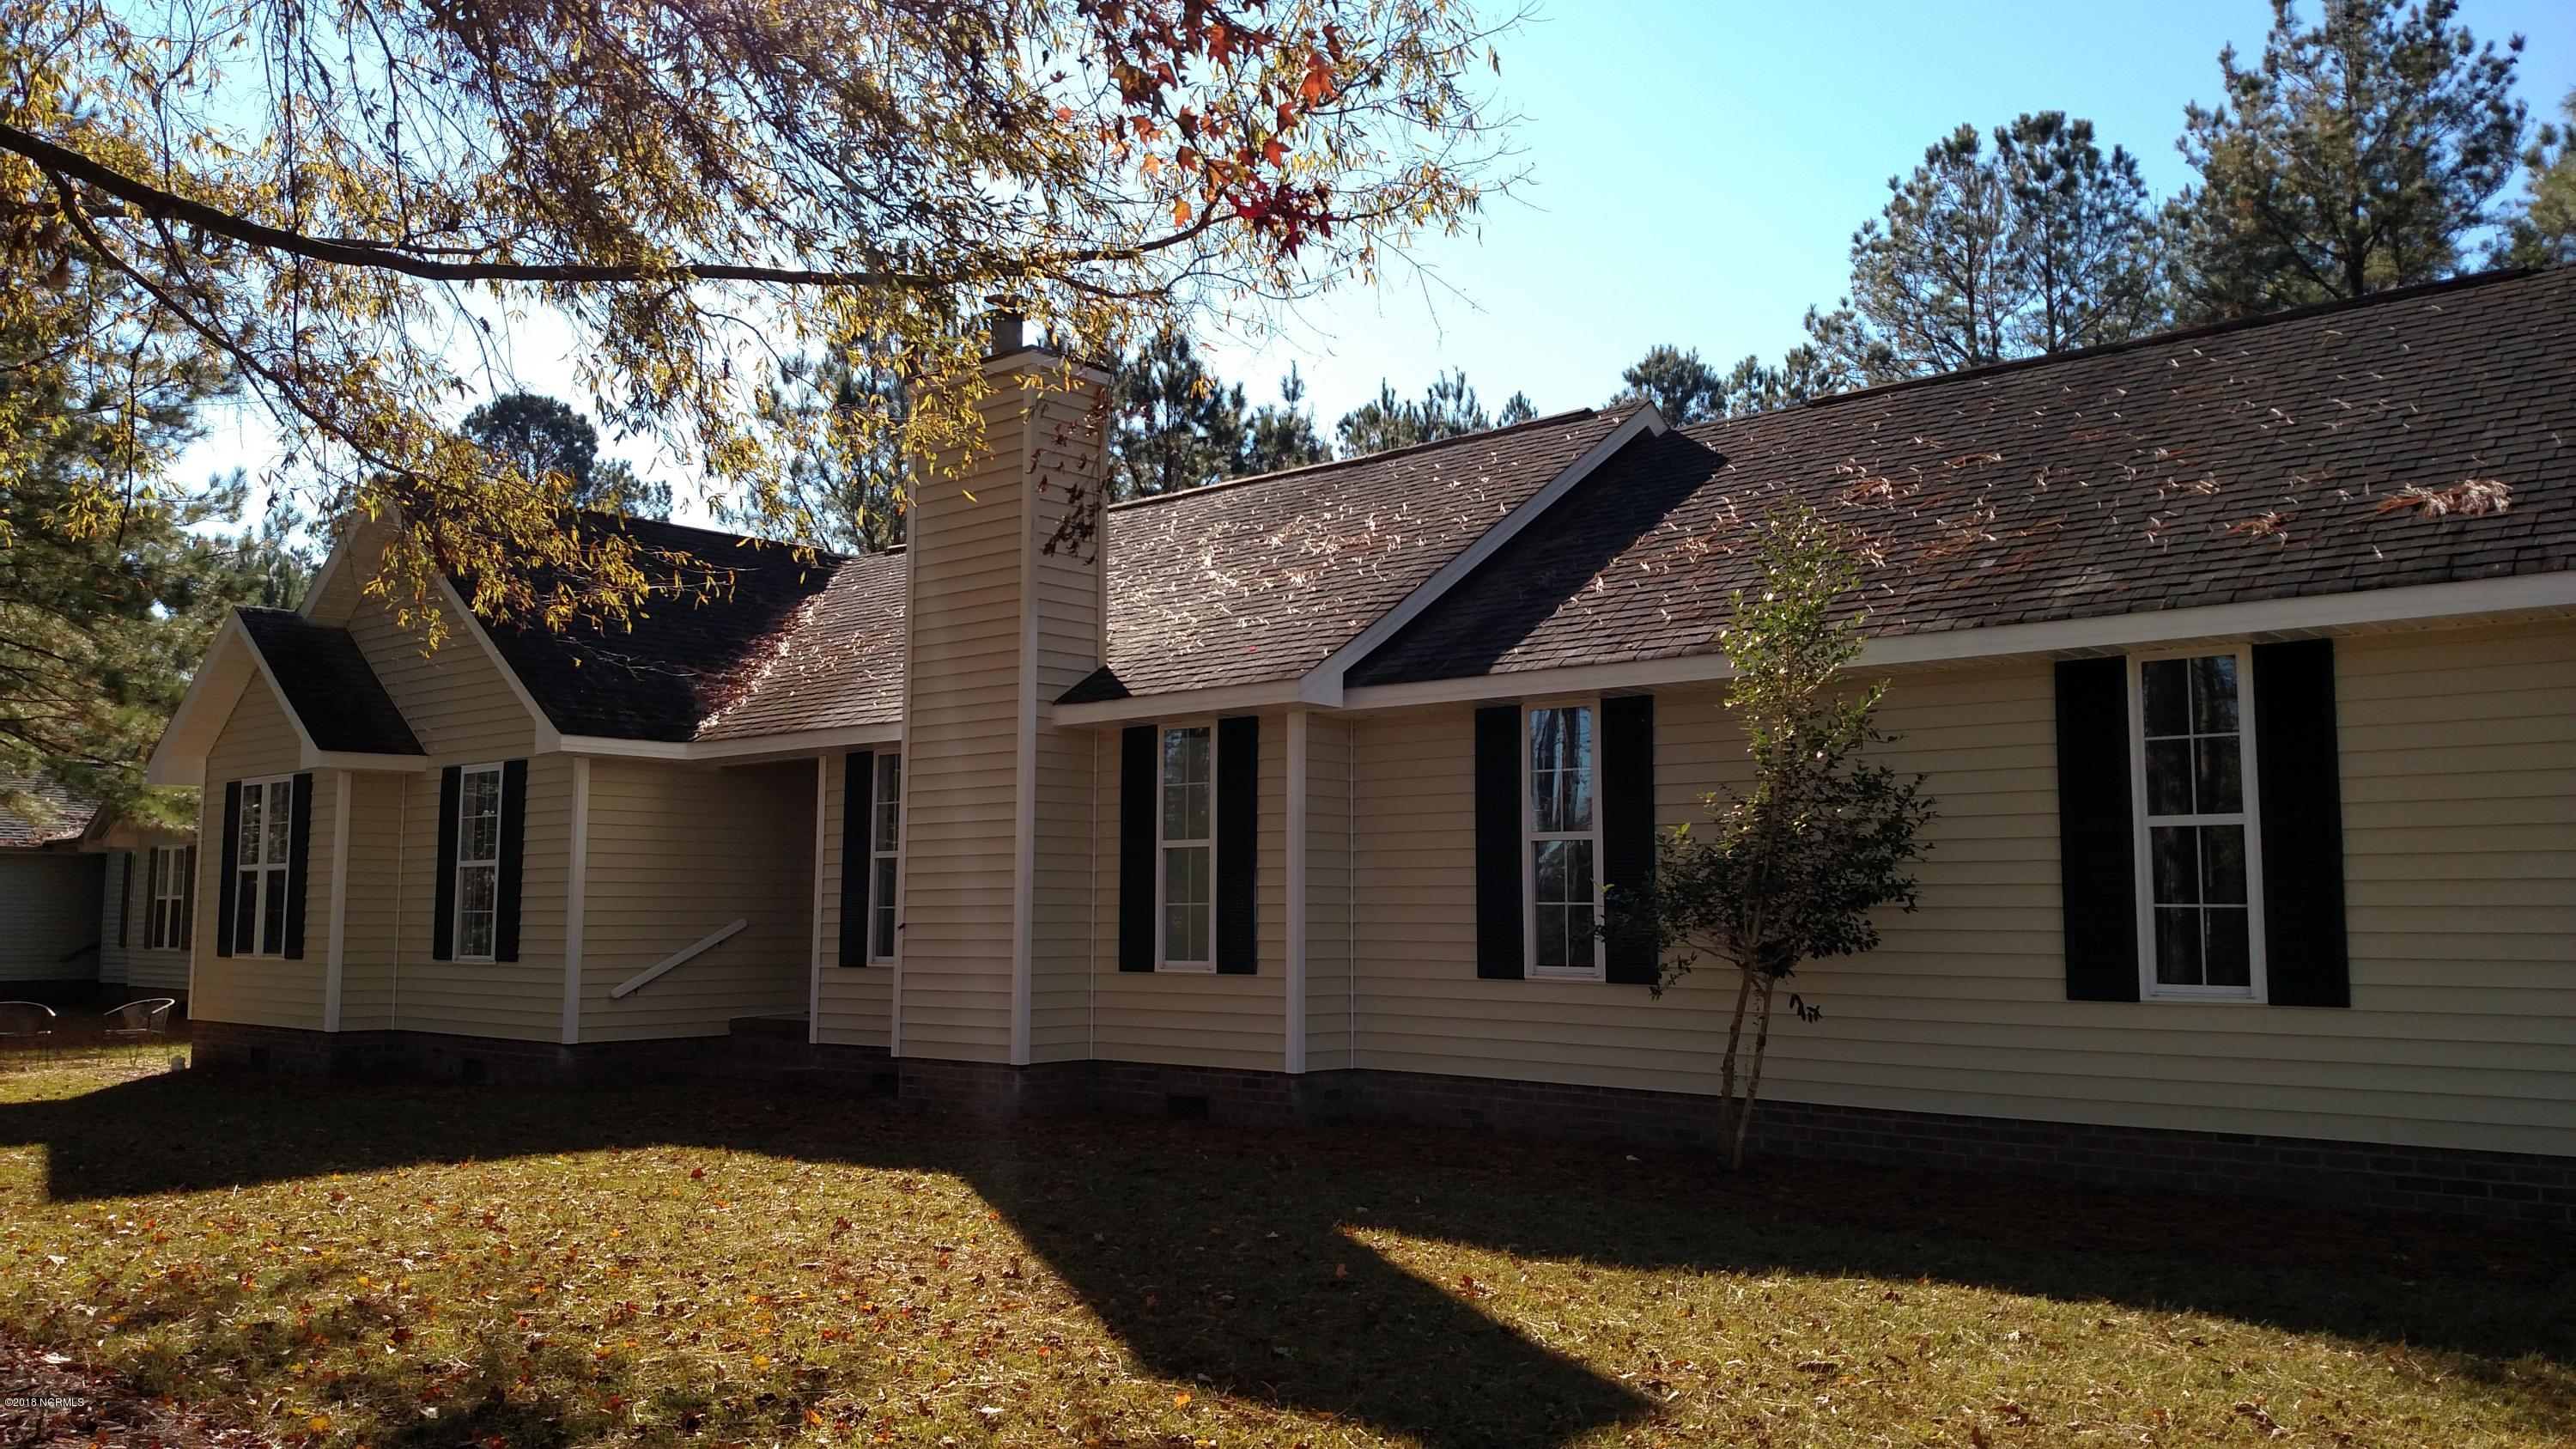 5610 Styron Drive, Oriental, North Carolina, 3 Bedrooms Bedrooms, 6 Rooms Rooms,2 BathroomsBathrooms,Single family residence,For sale,Styron,100142153